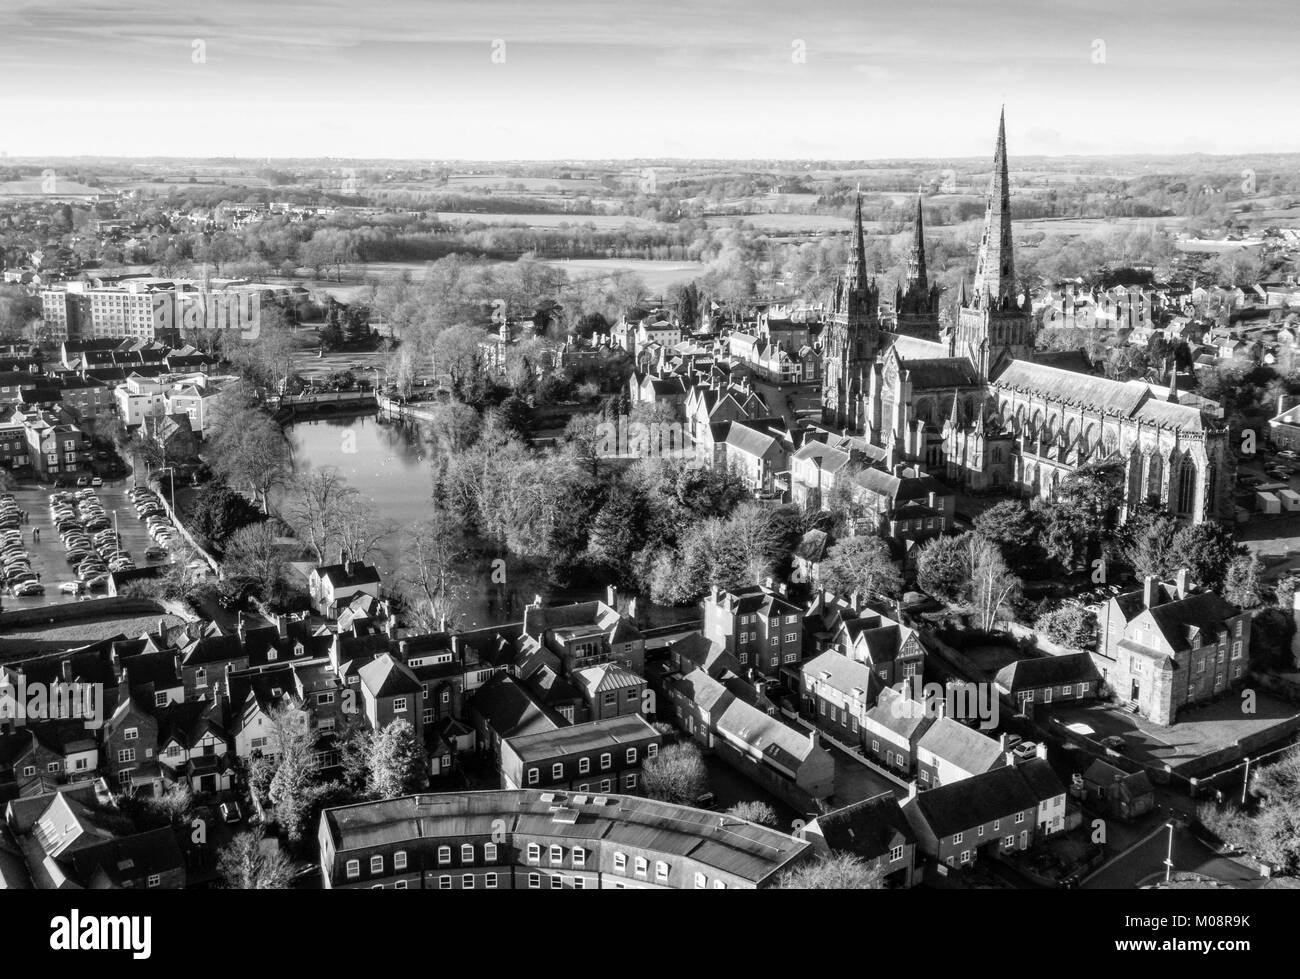 Lichfield from the air. Stock Photo